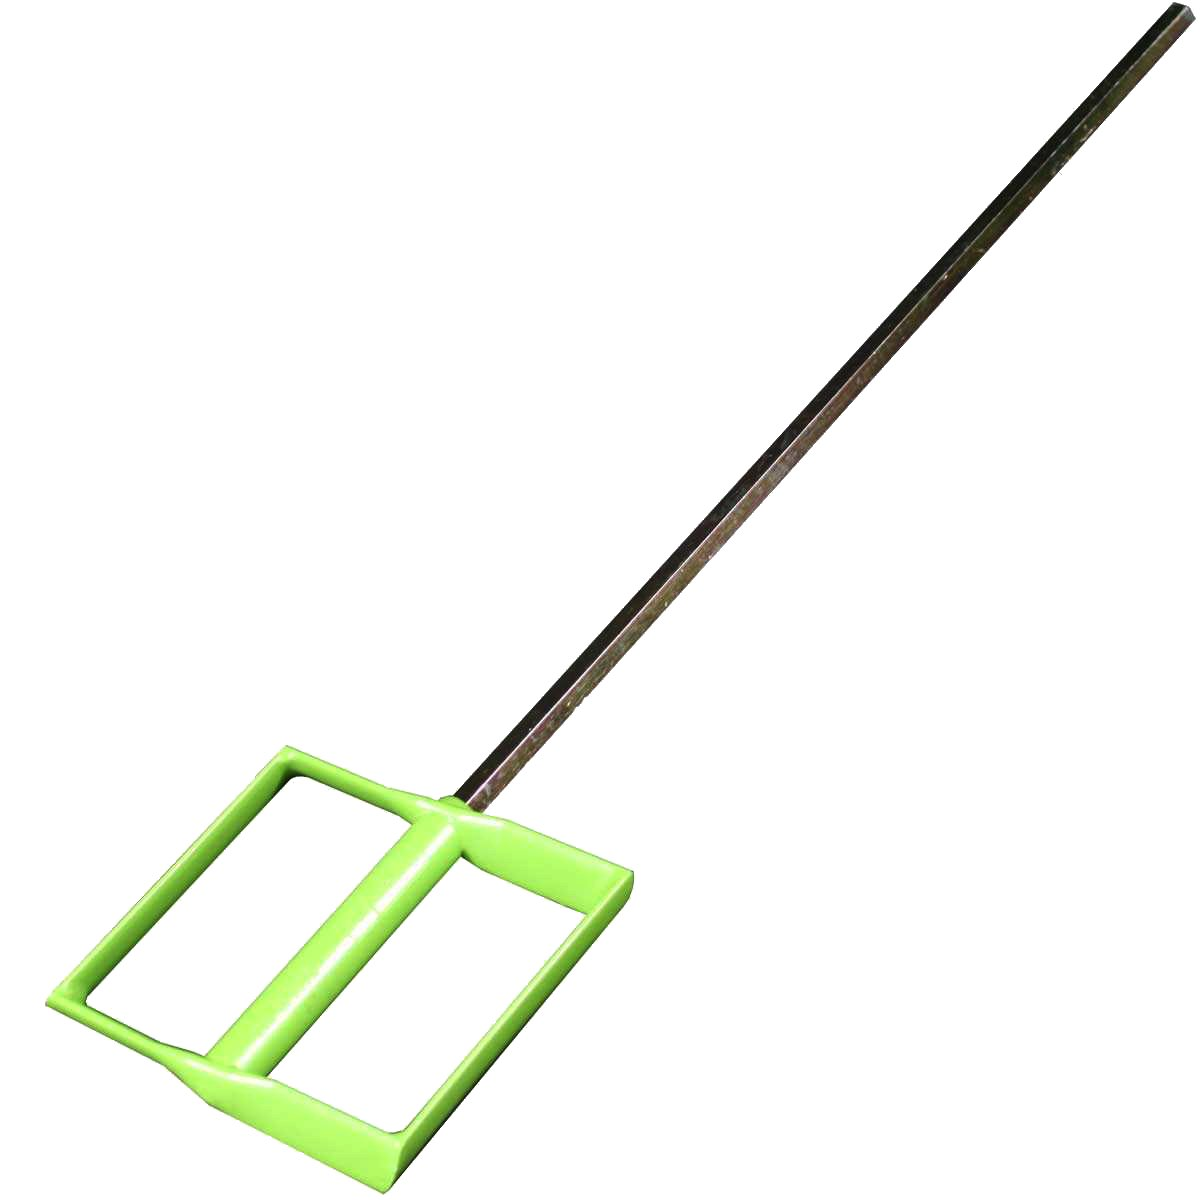 Mix-It Mixing Paddle for Drywall Mud, Paint, Grout, Thinset, Mortar - Hex Shaft fits 1/2'' Drills